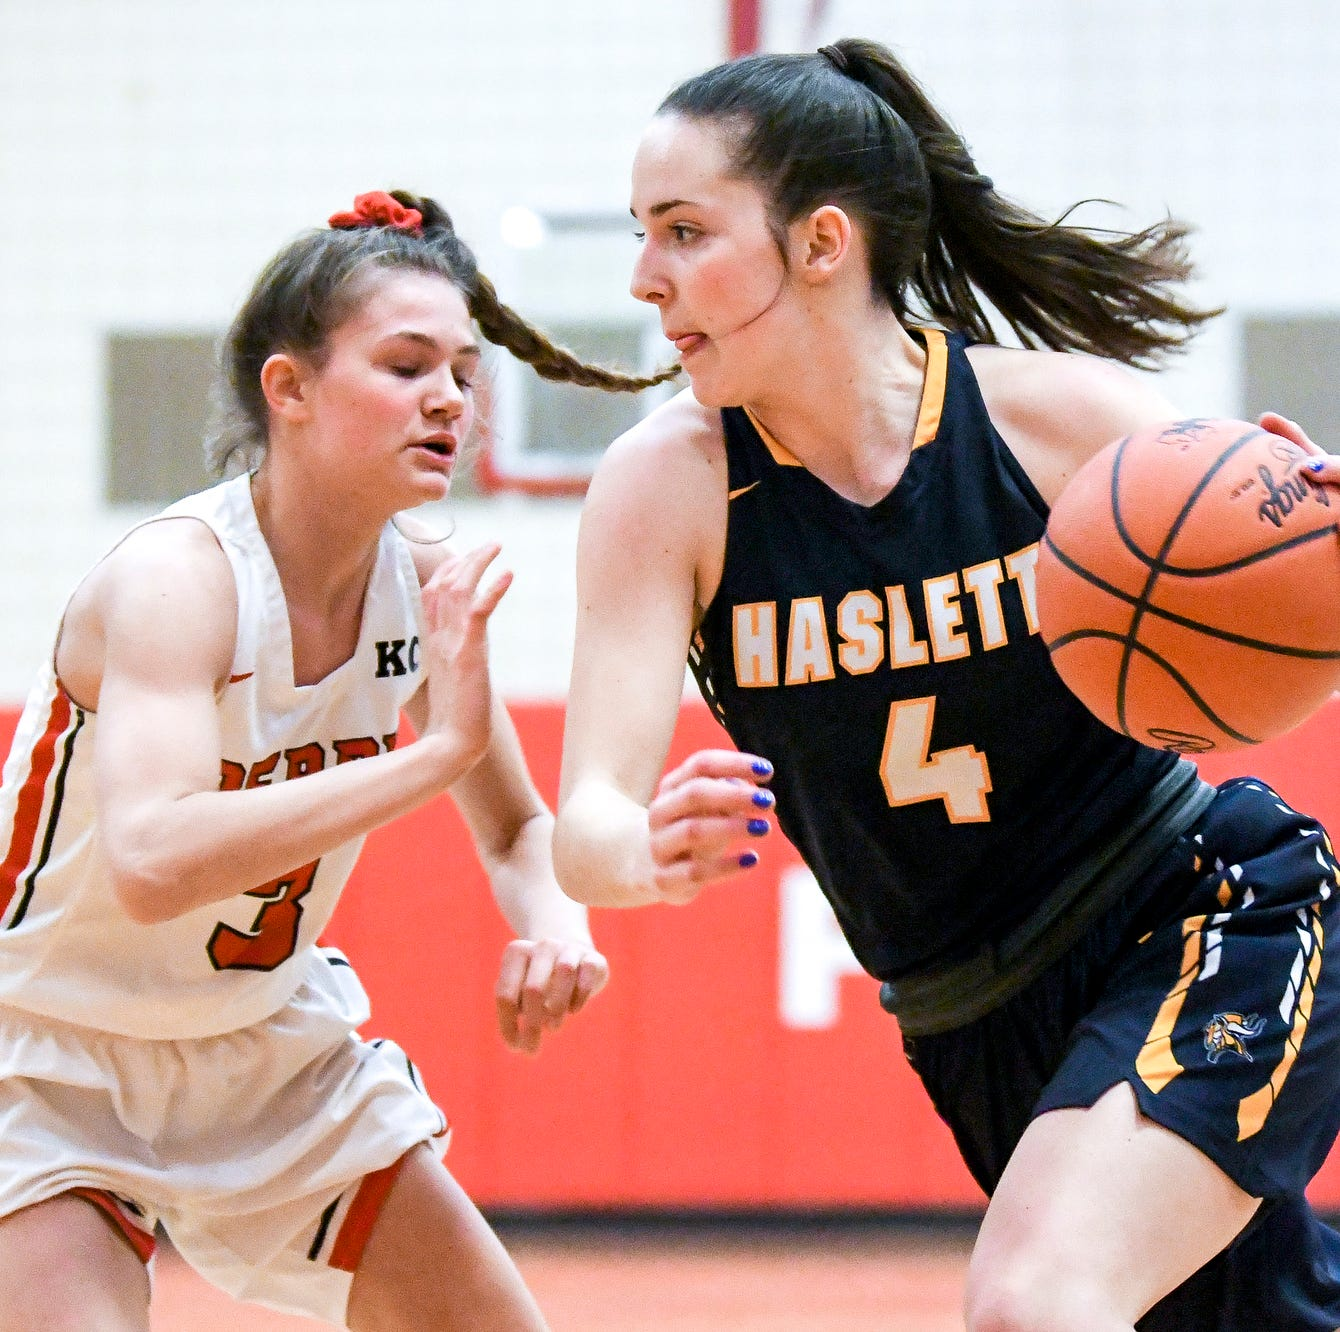 Haslett's Ella McKinney, right, moves past Perry's Elizabeth Gramza during the first half on Monday, March 4, 2019, at Perry High School.